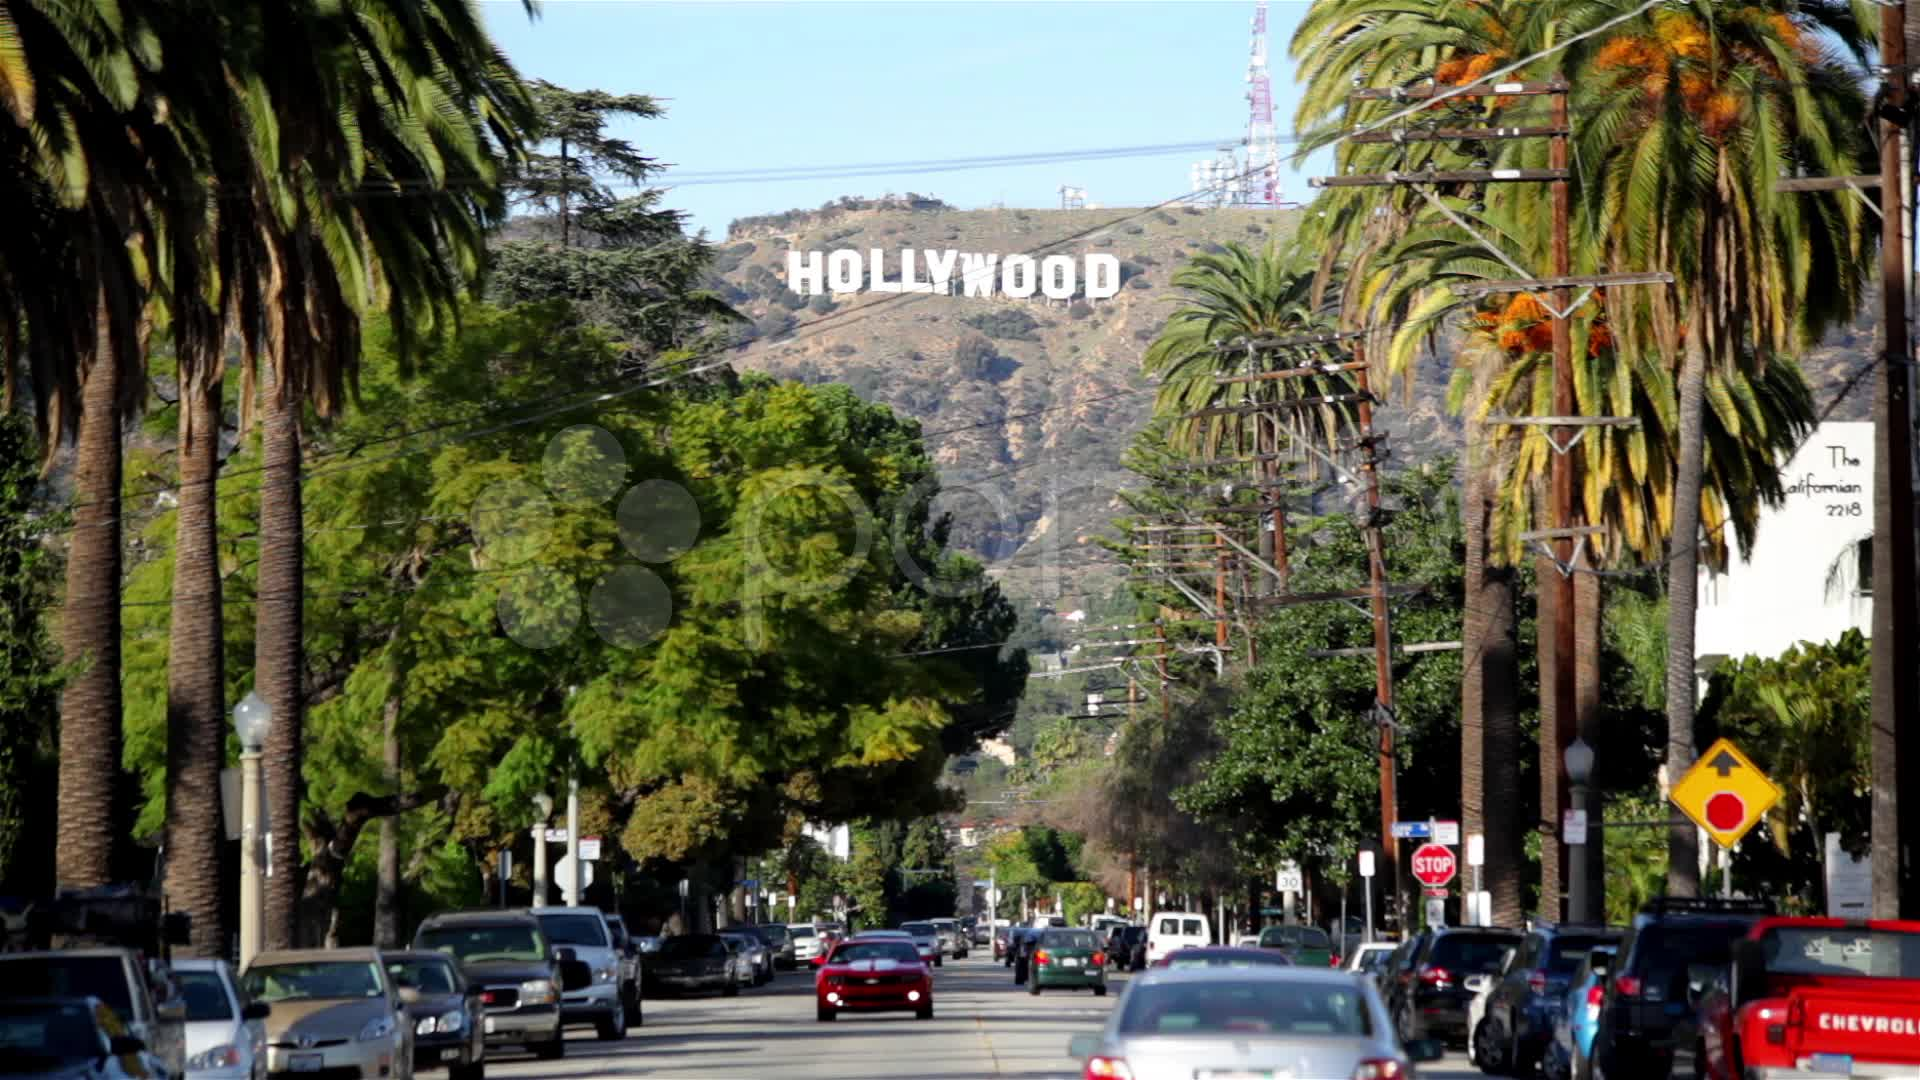 hollywood desktop background - photo #10